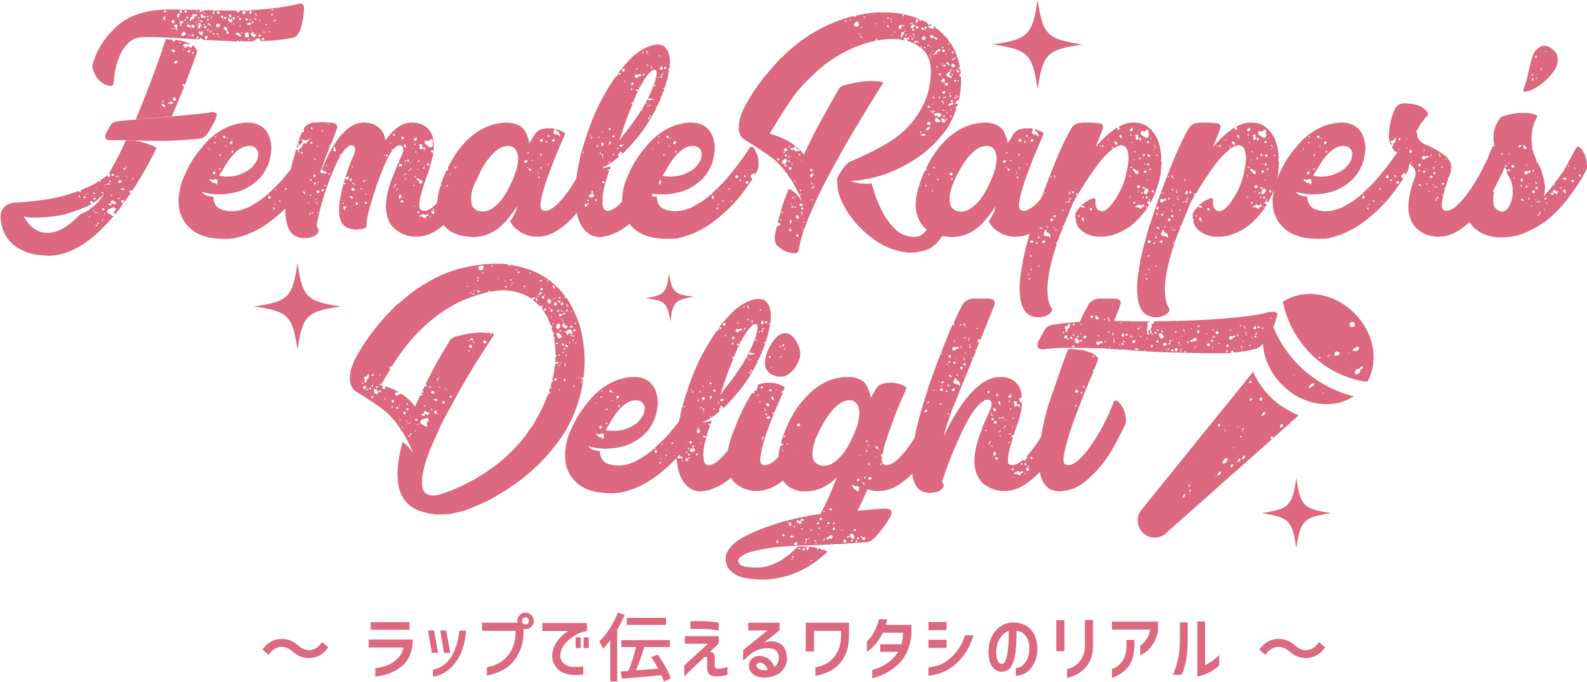 Female Rapper's Delight